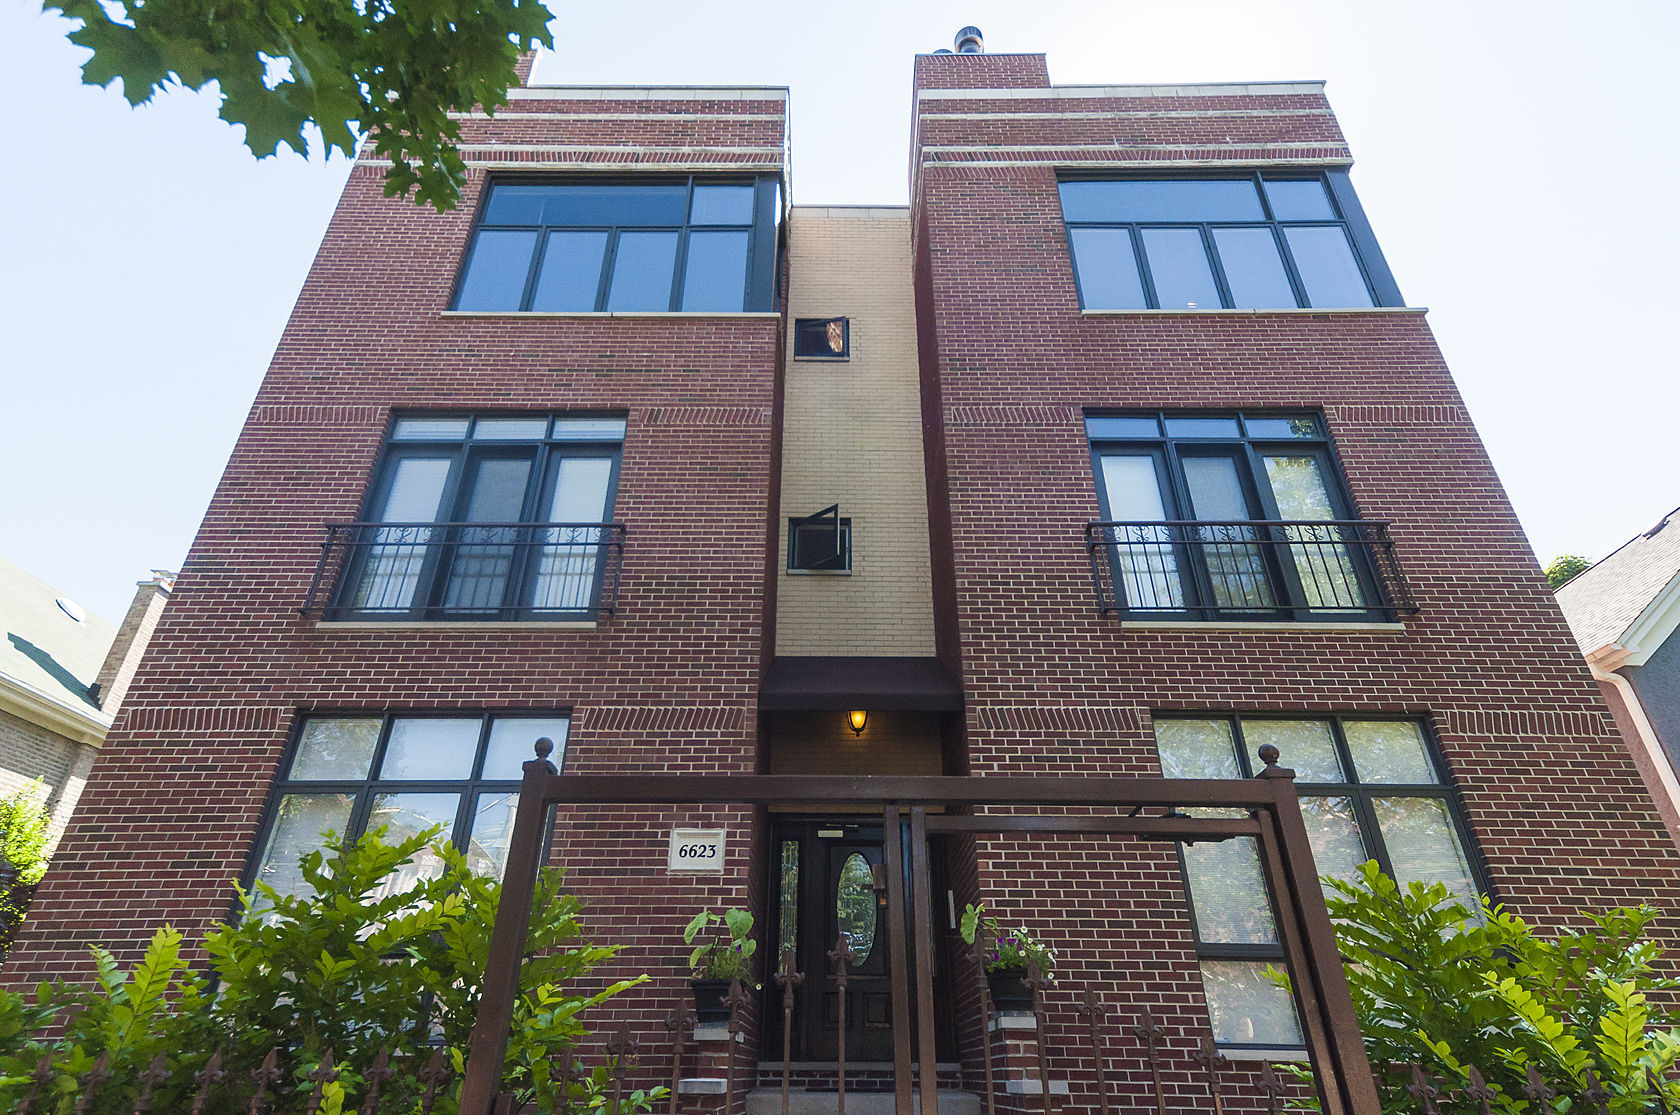 Condominium for Sale at Fabulous Unit With All The Amenities In Great New Building 6623 N Greenview Avenue Unit 3S Rogers Park, Chicago, Illinois 60626 United States